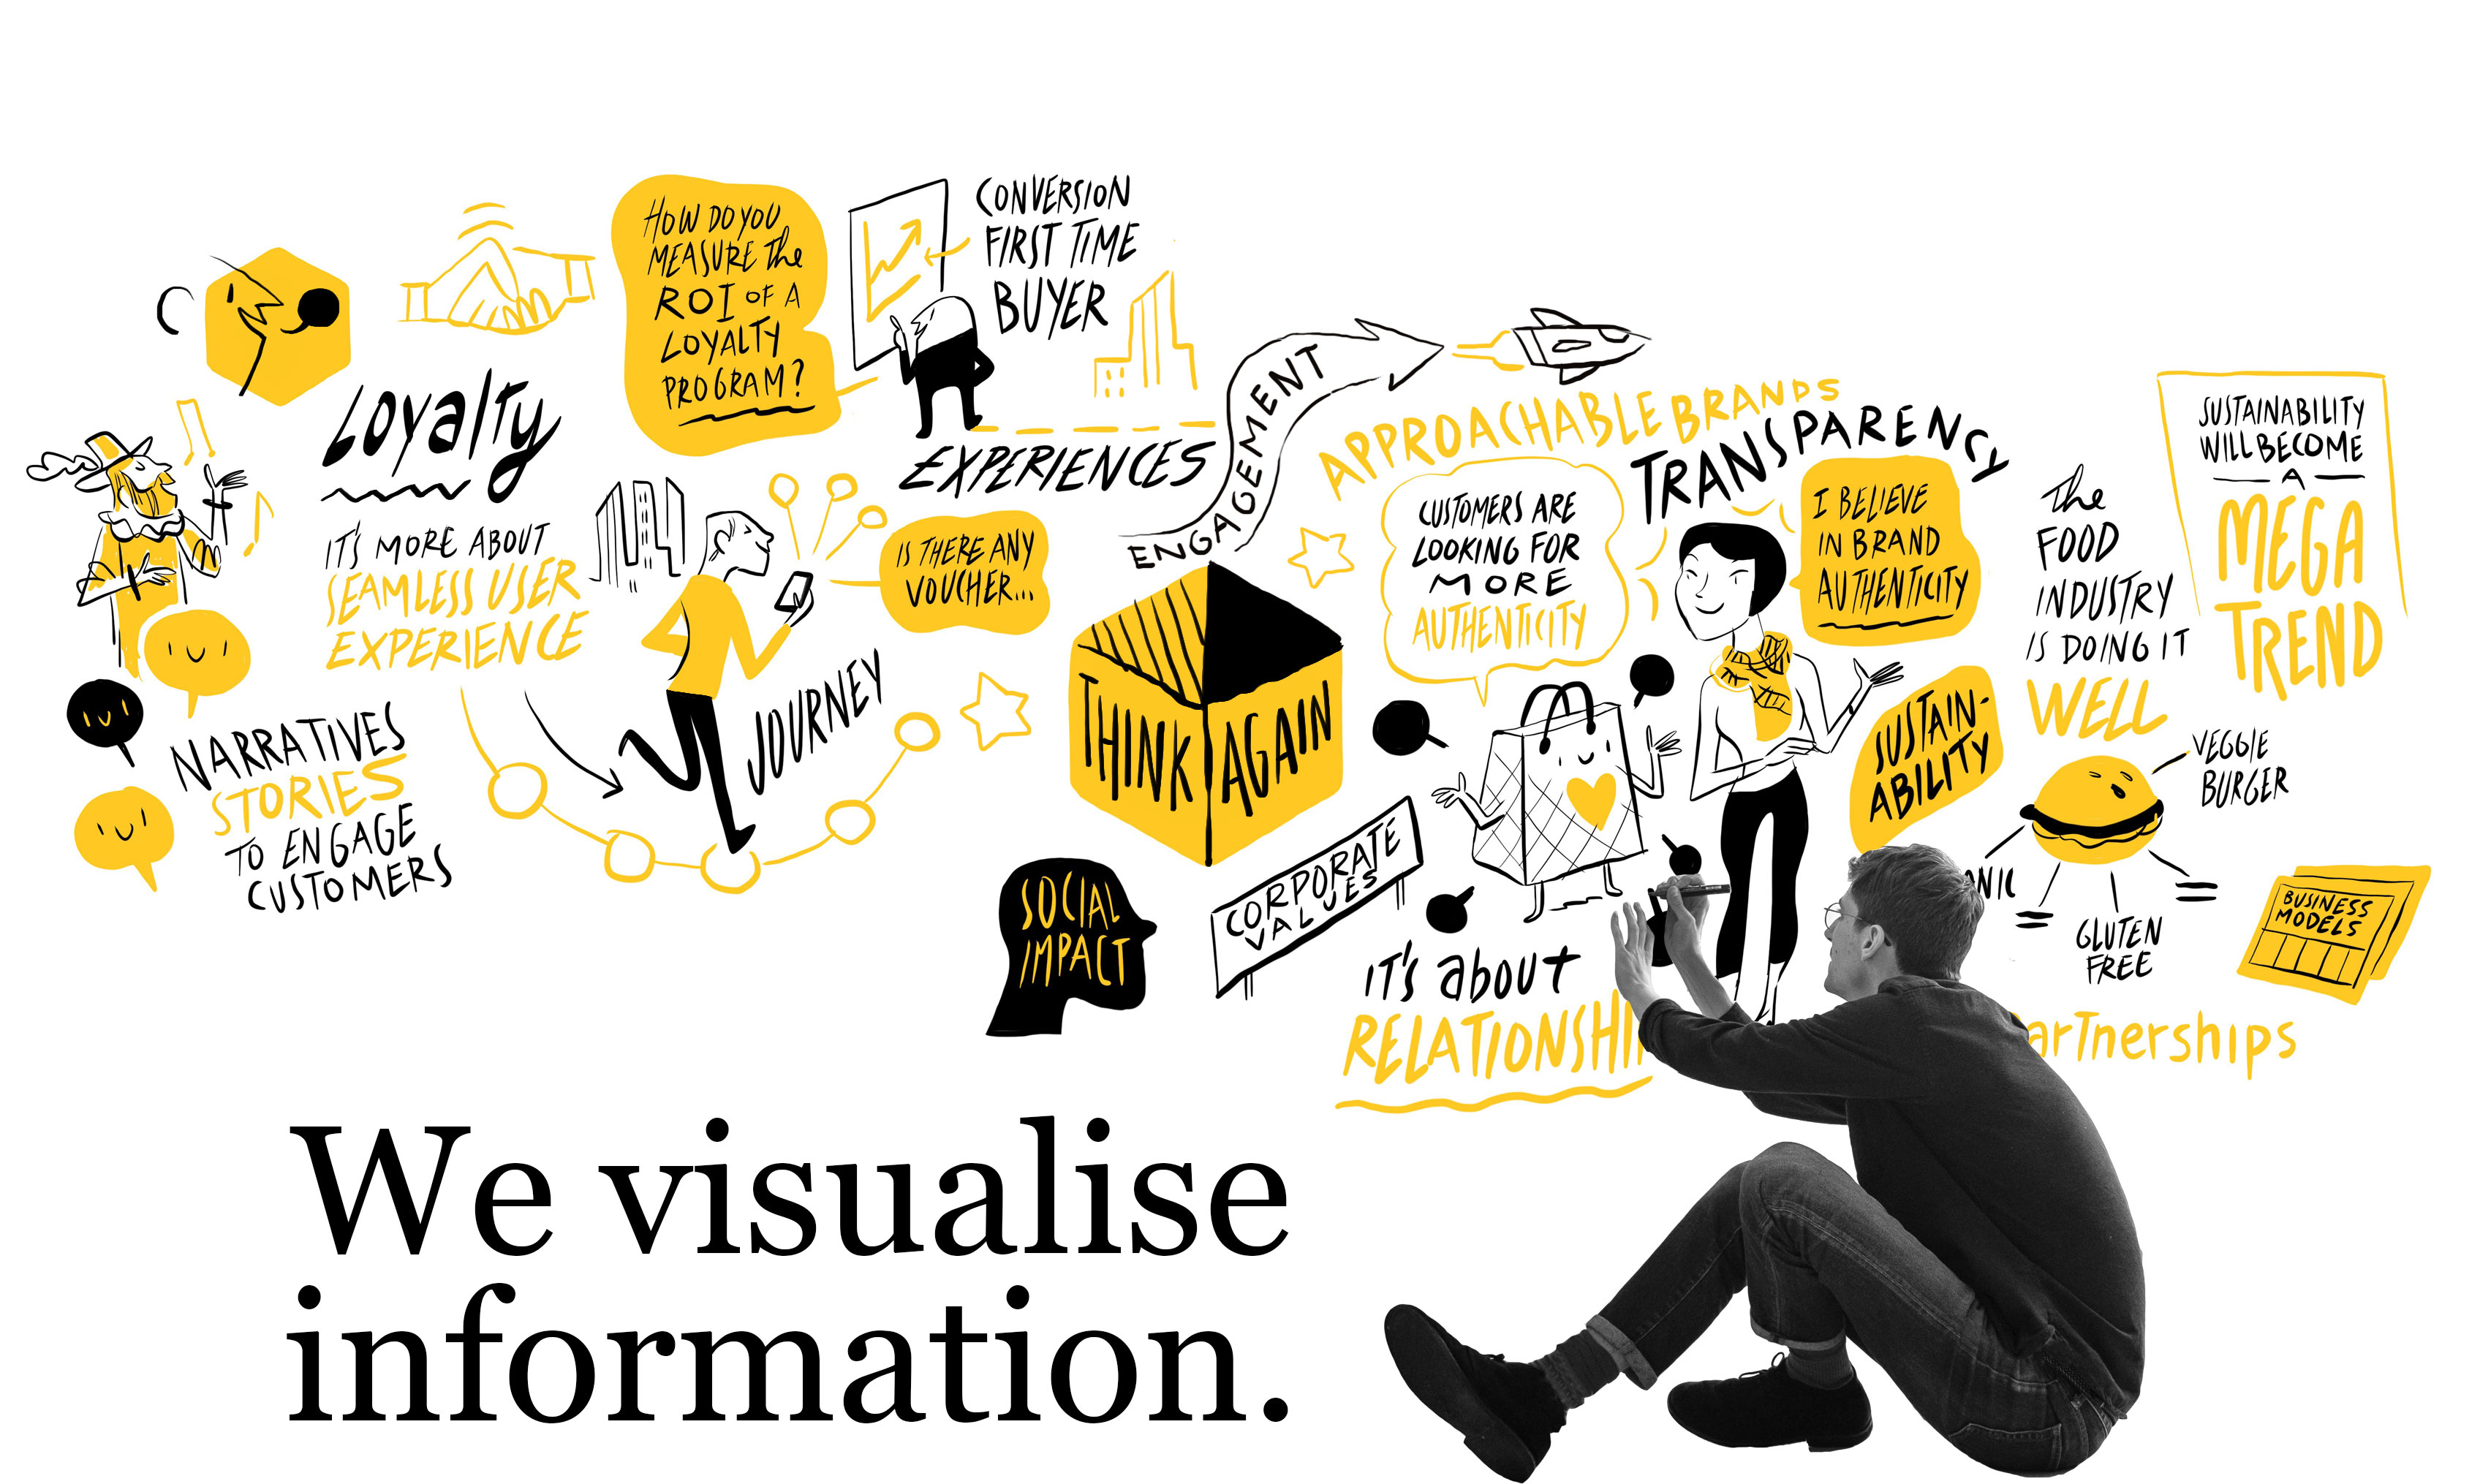 We visualise information.